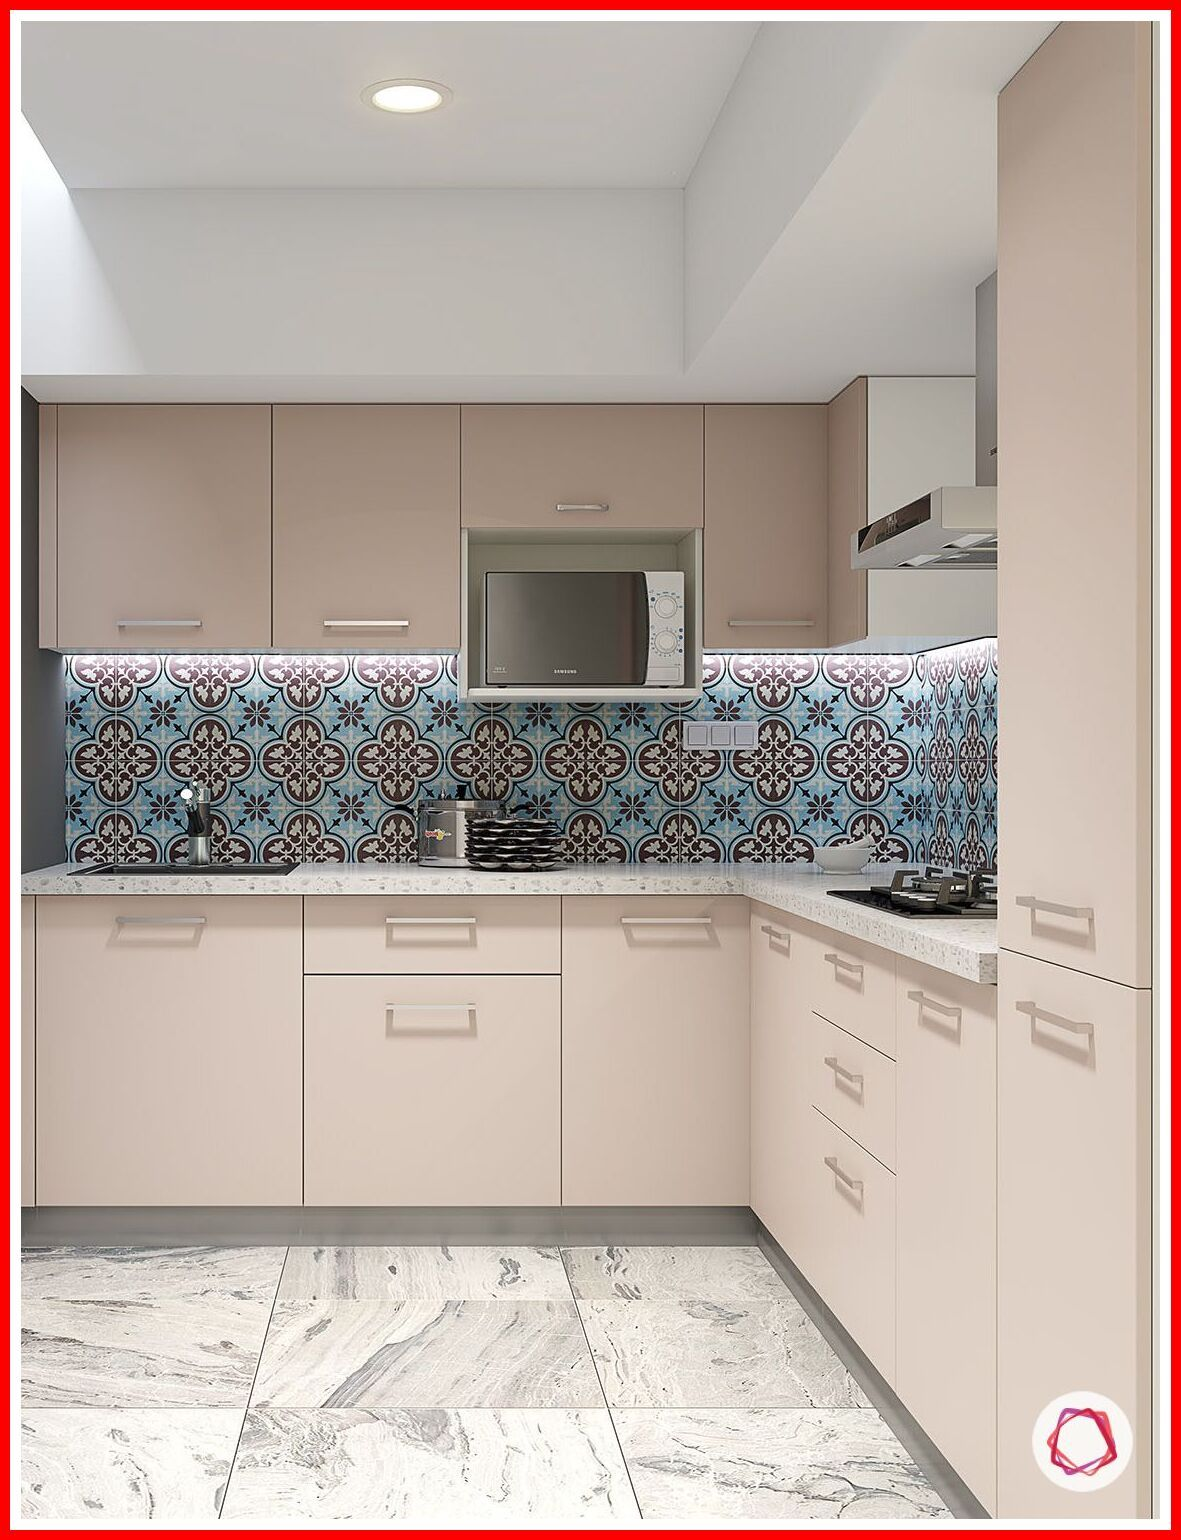 91 Reference Of Indian Style Kitchen Wall Tiles Kitchen Tiles Design Home Tiles Design Interior Design Kitchen